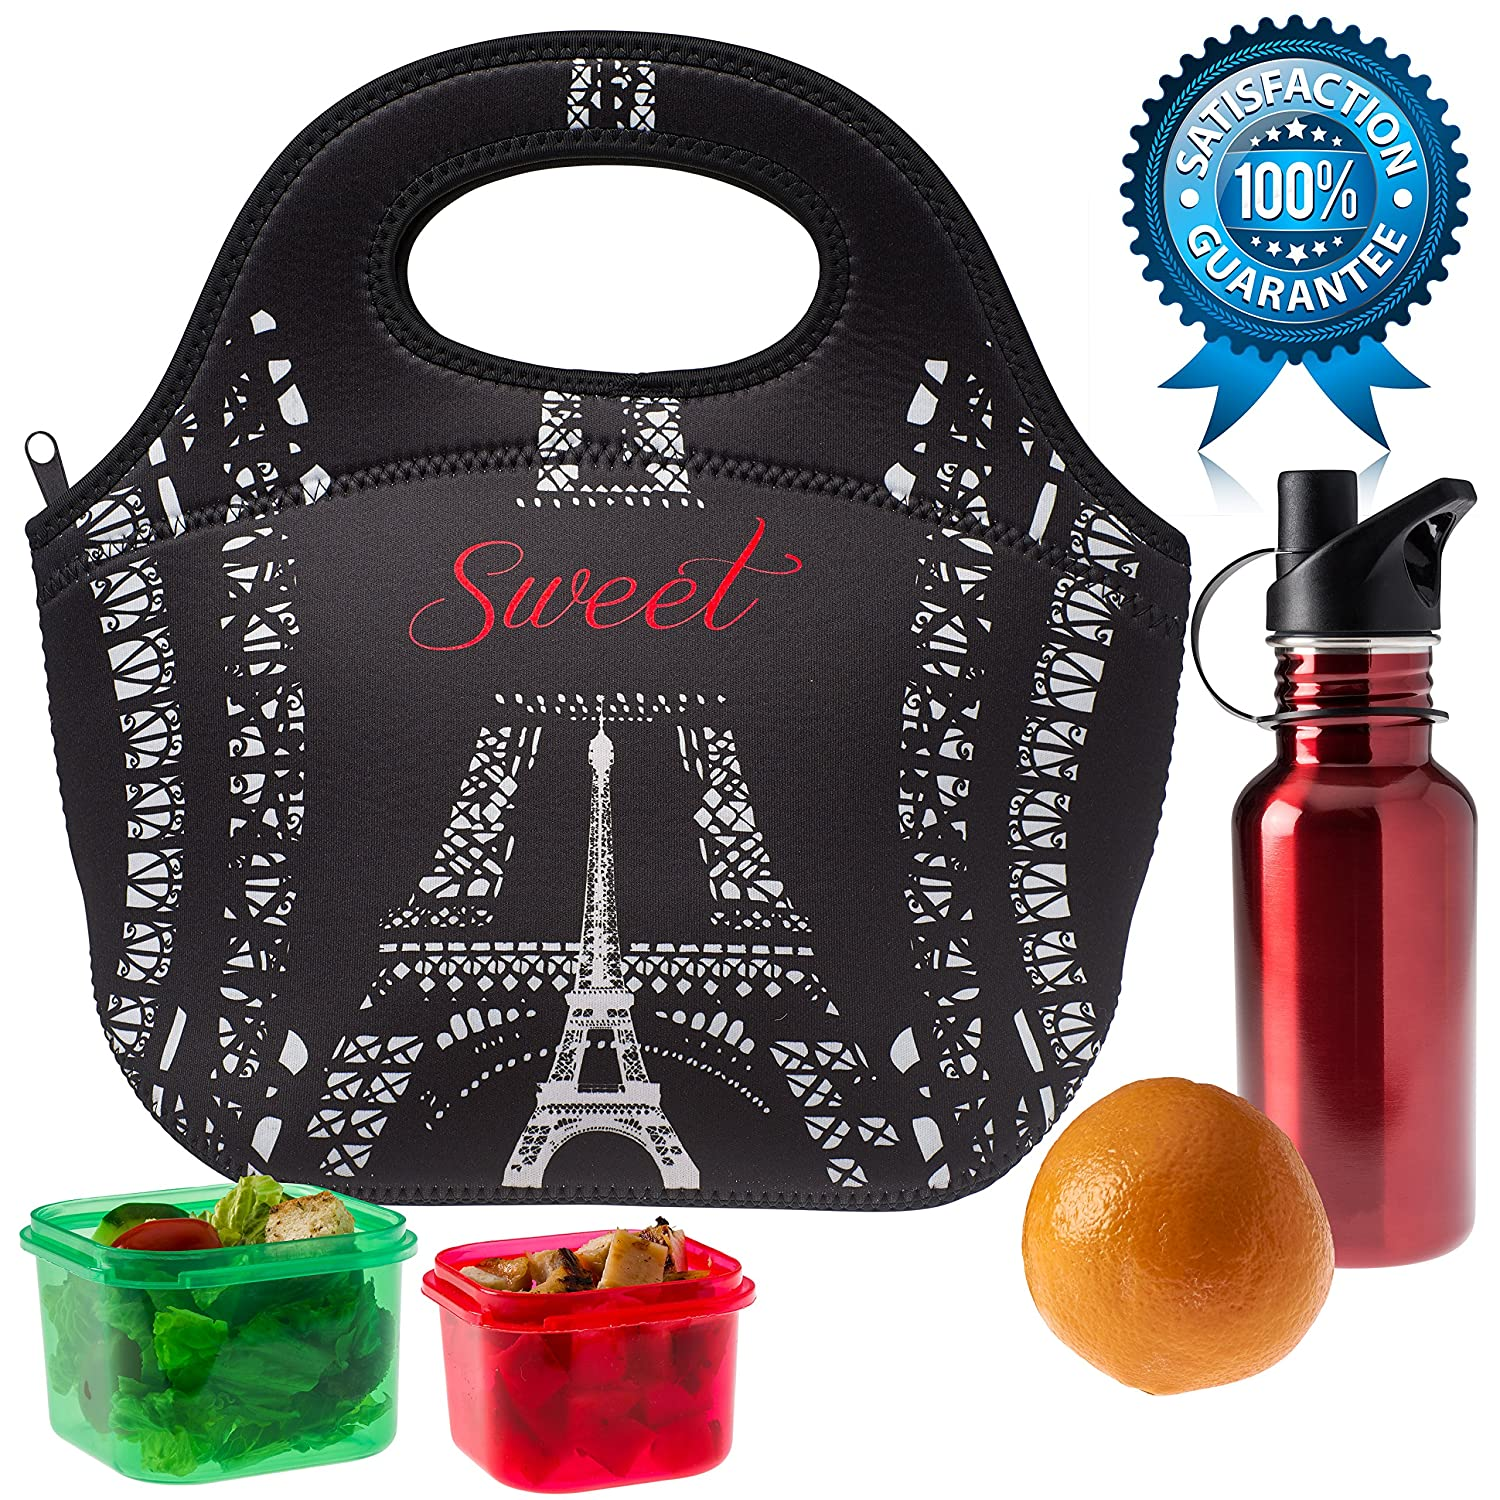 SWEET CONCEPTS Insulated Reusable Neoprene Lunch Bag - Black